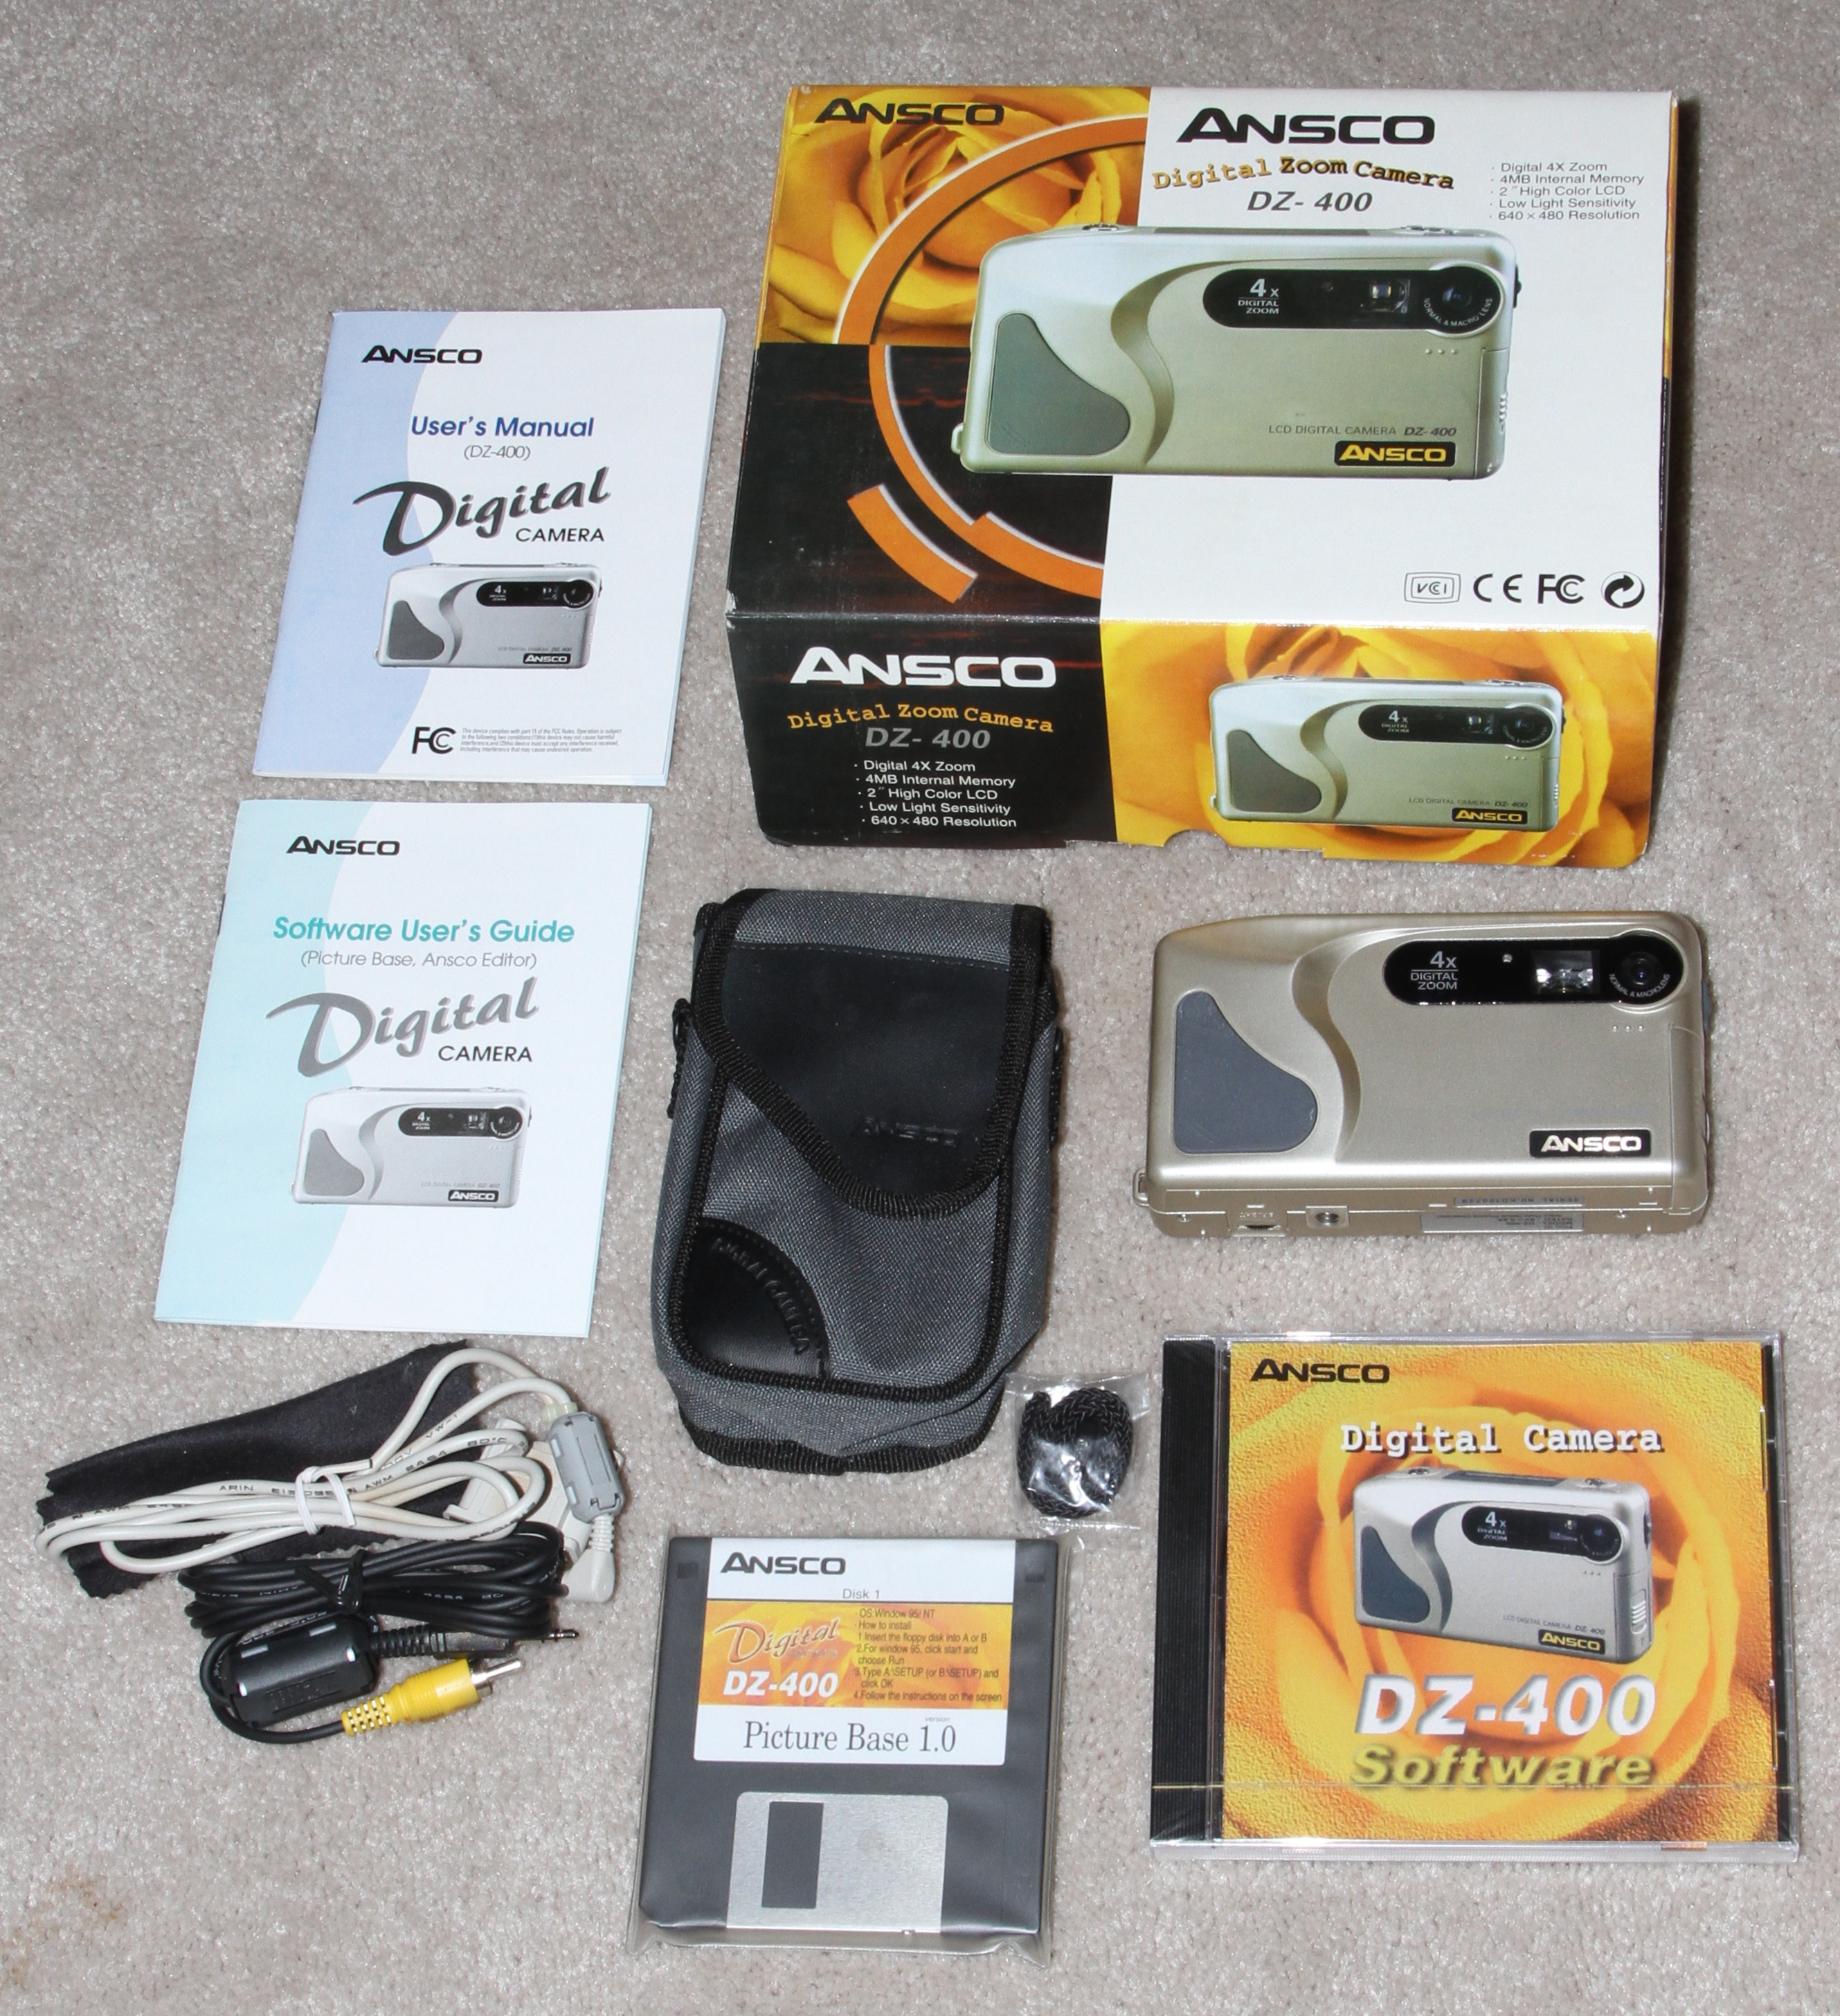 ansco dz-400 digital camera set 1997